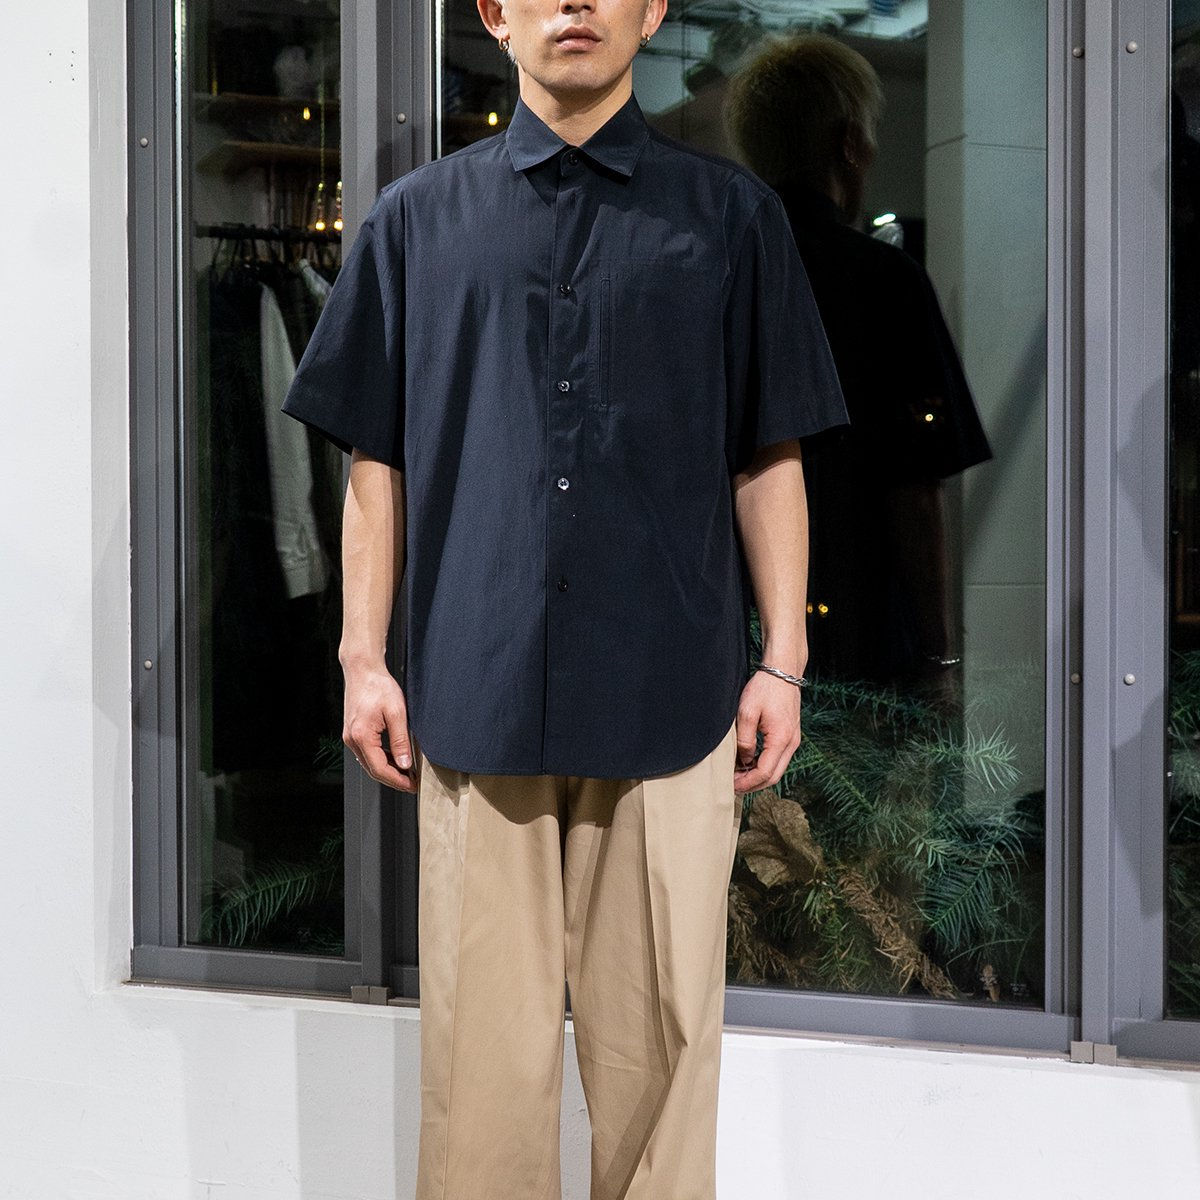 <img class='new_mark_img1' src='https://img.shop-pro.jp/img/new/icons5.gif' style='border:none;display:inline;margin:0px;padding:0px;width:auto;' />CLASSIC SHORT-SLEEVED SHIRT / BLACK